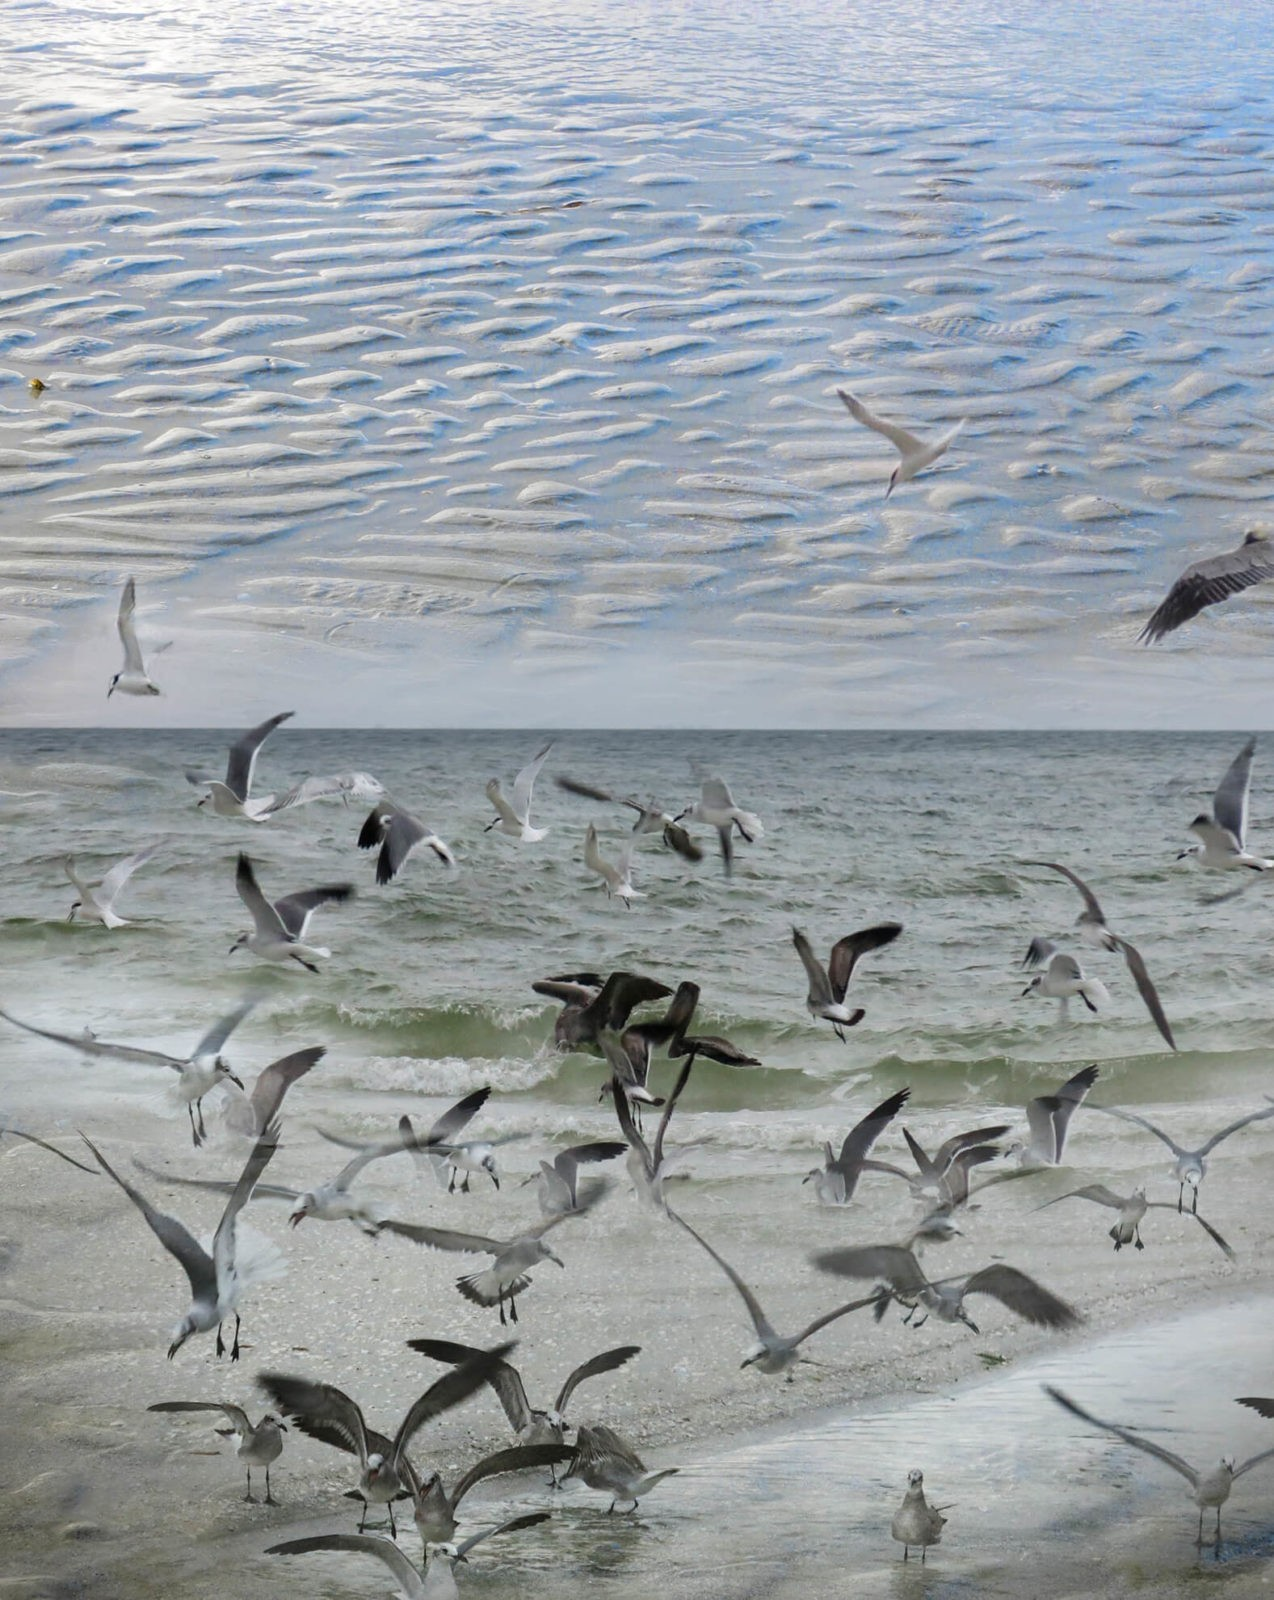 Robin Botie of Ithaca, New York, photographs birds in flight on the beach in Sanibel, Florida.